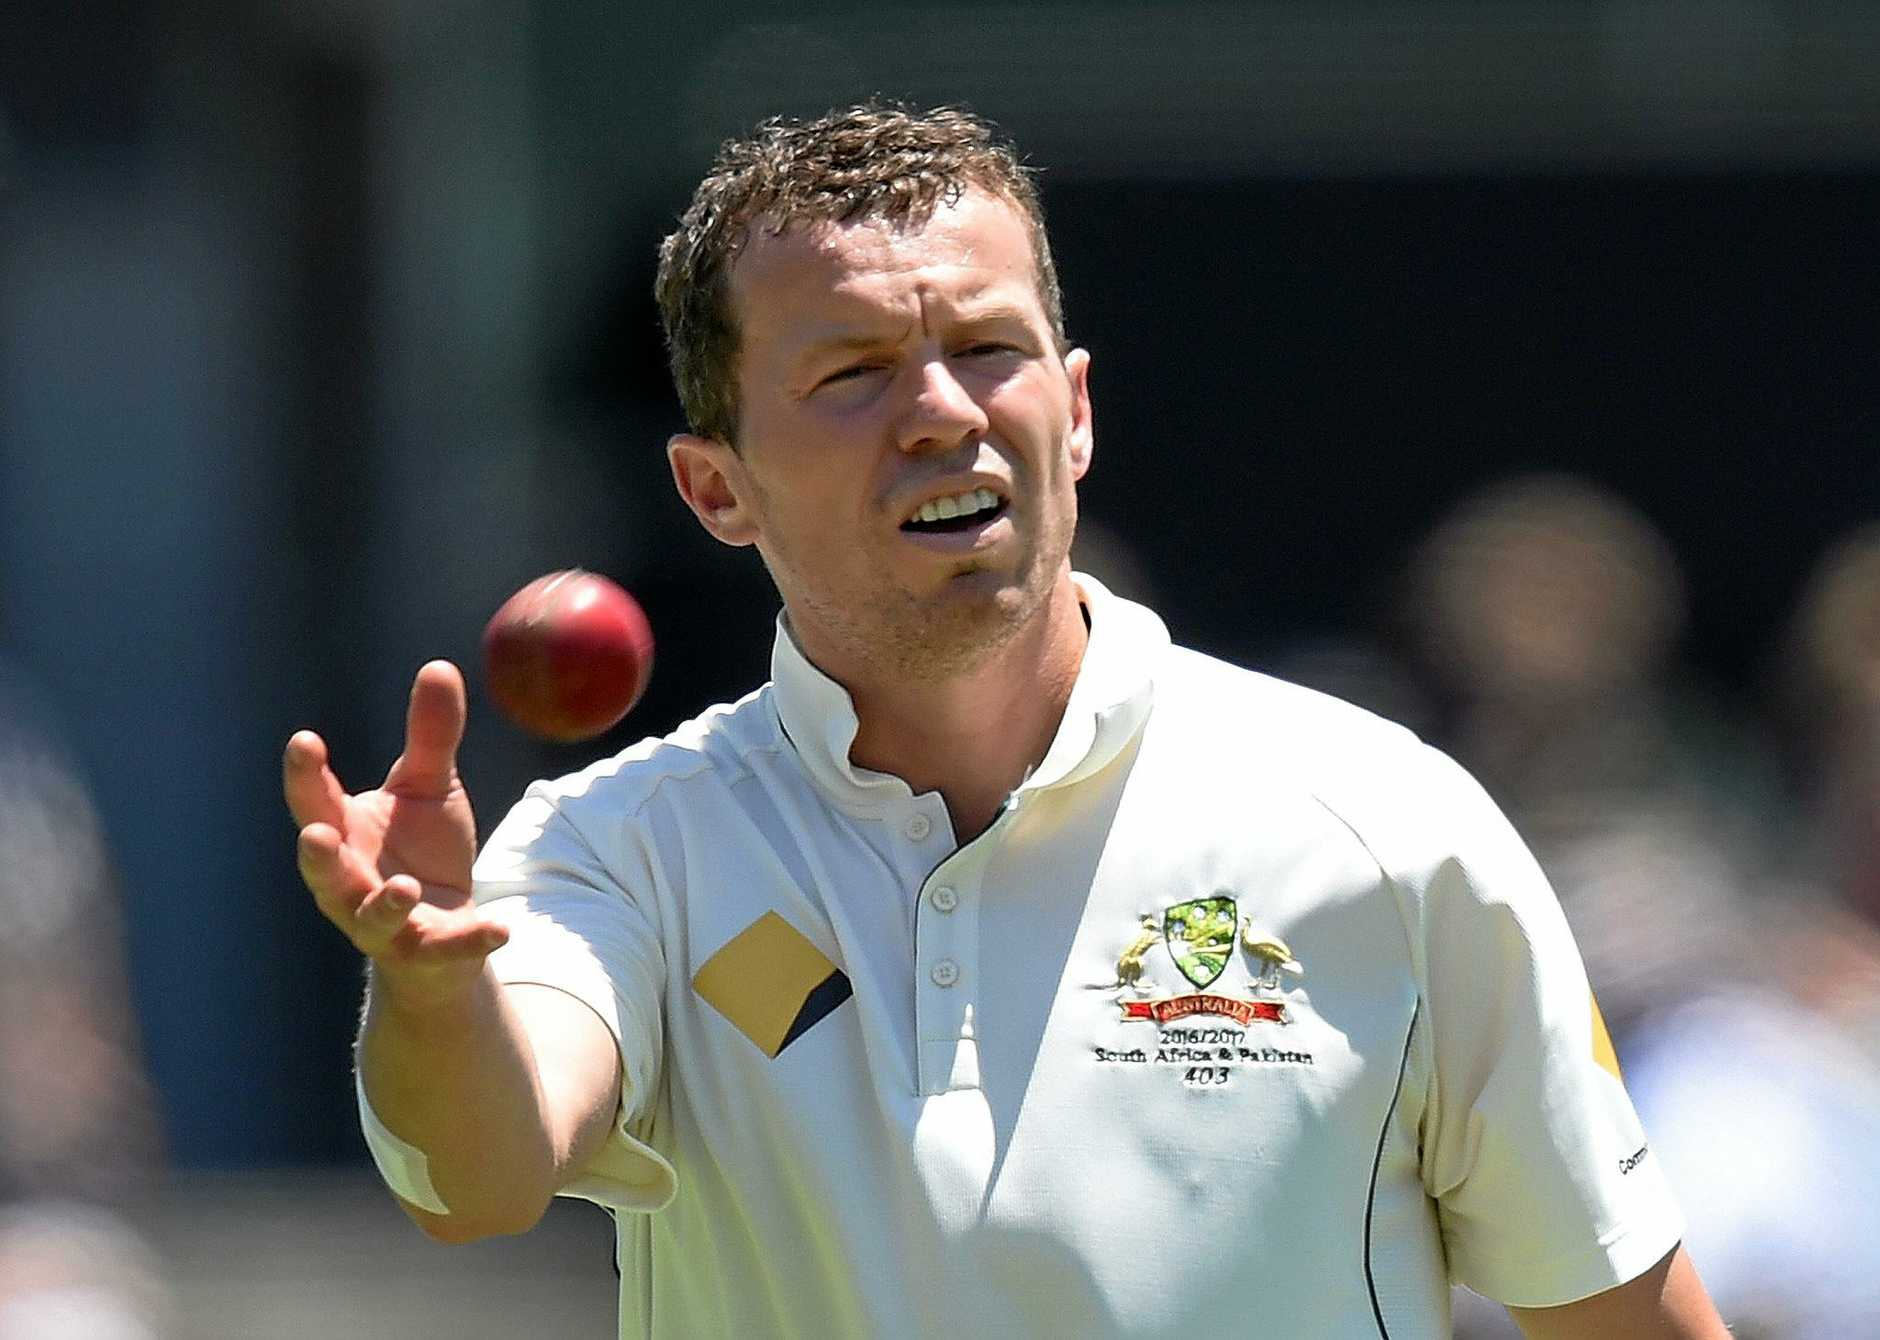 Australian bowler Peter Siddle says players just want to be treated fairly.